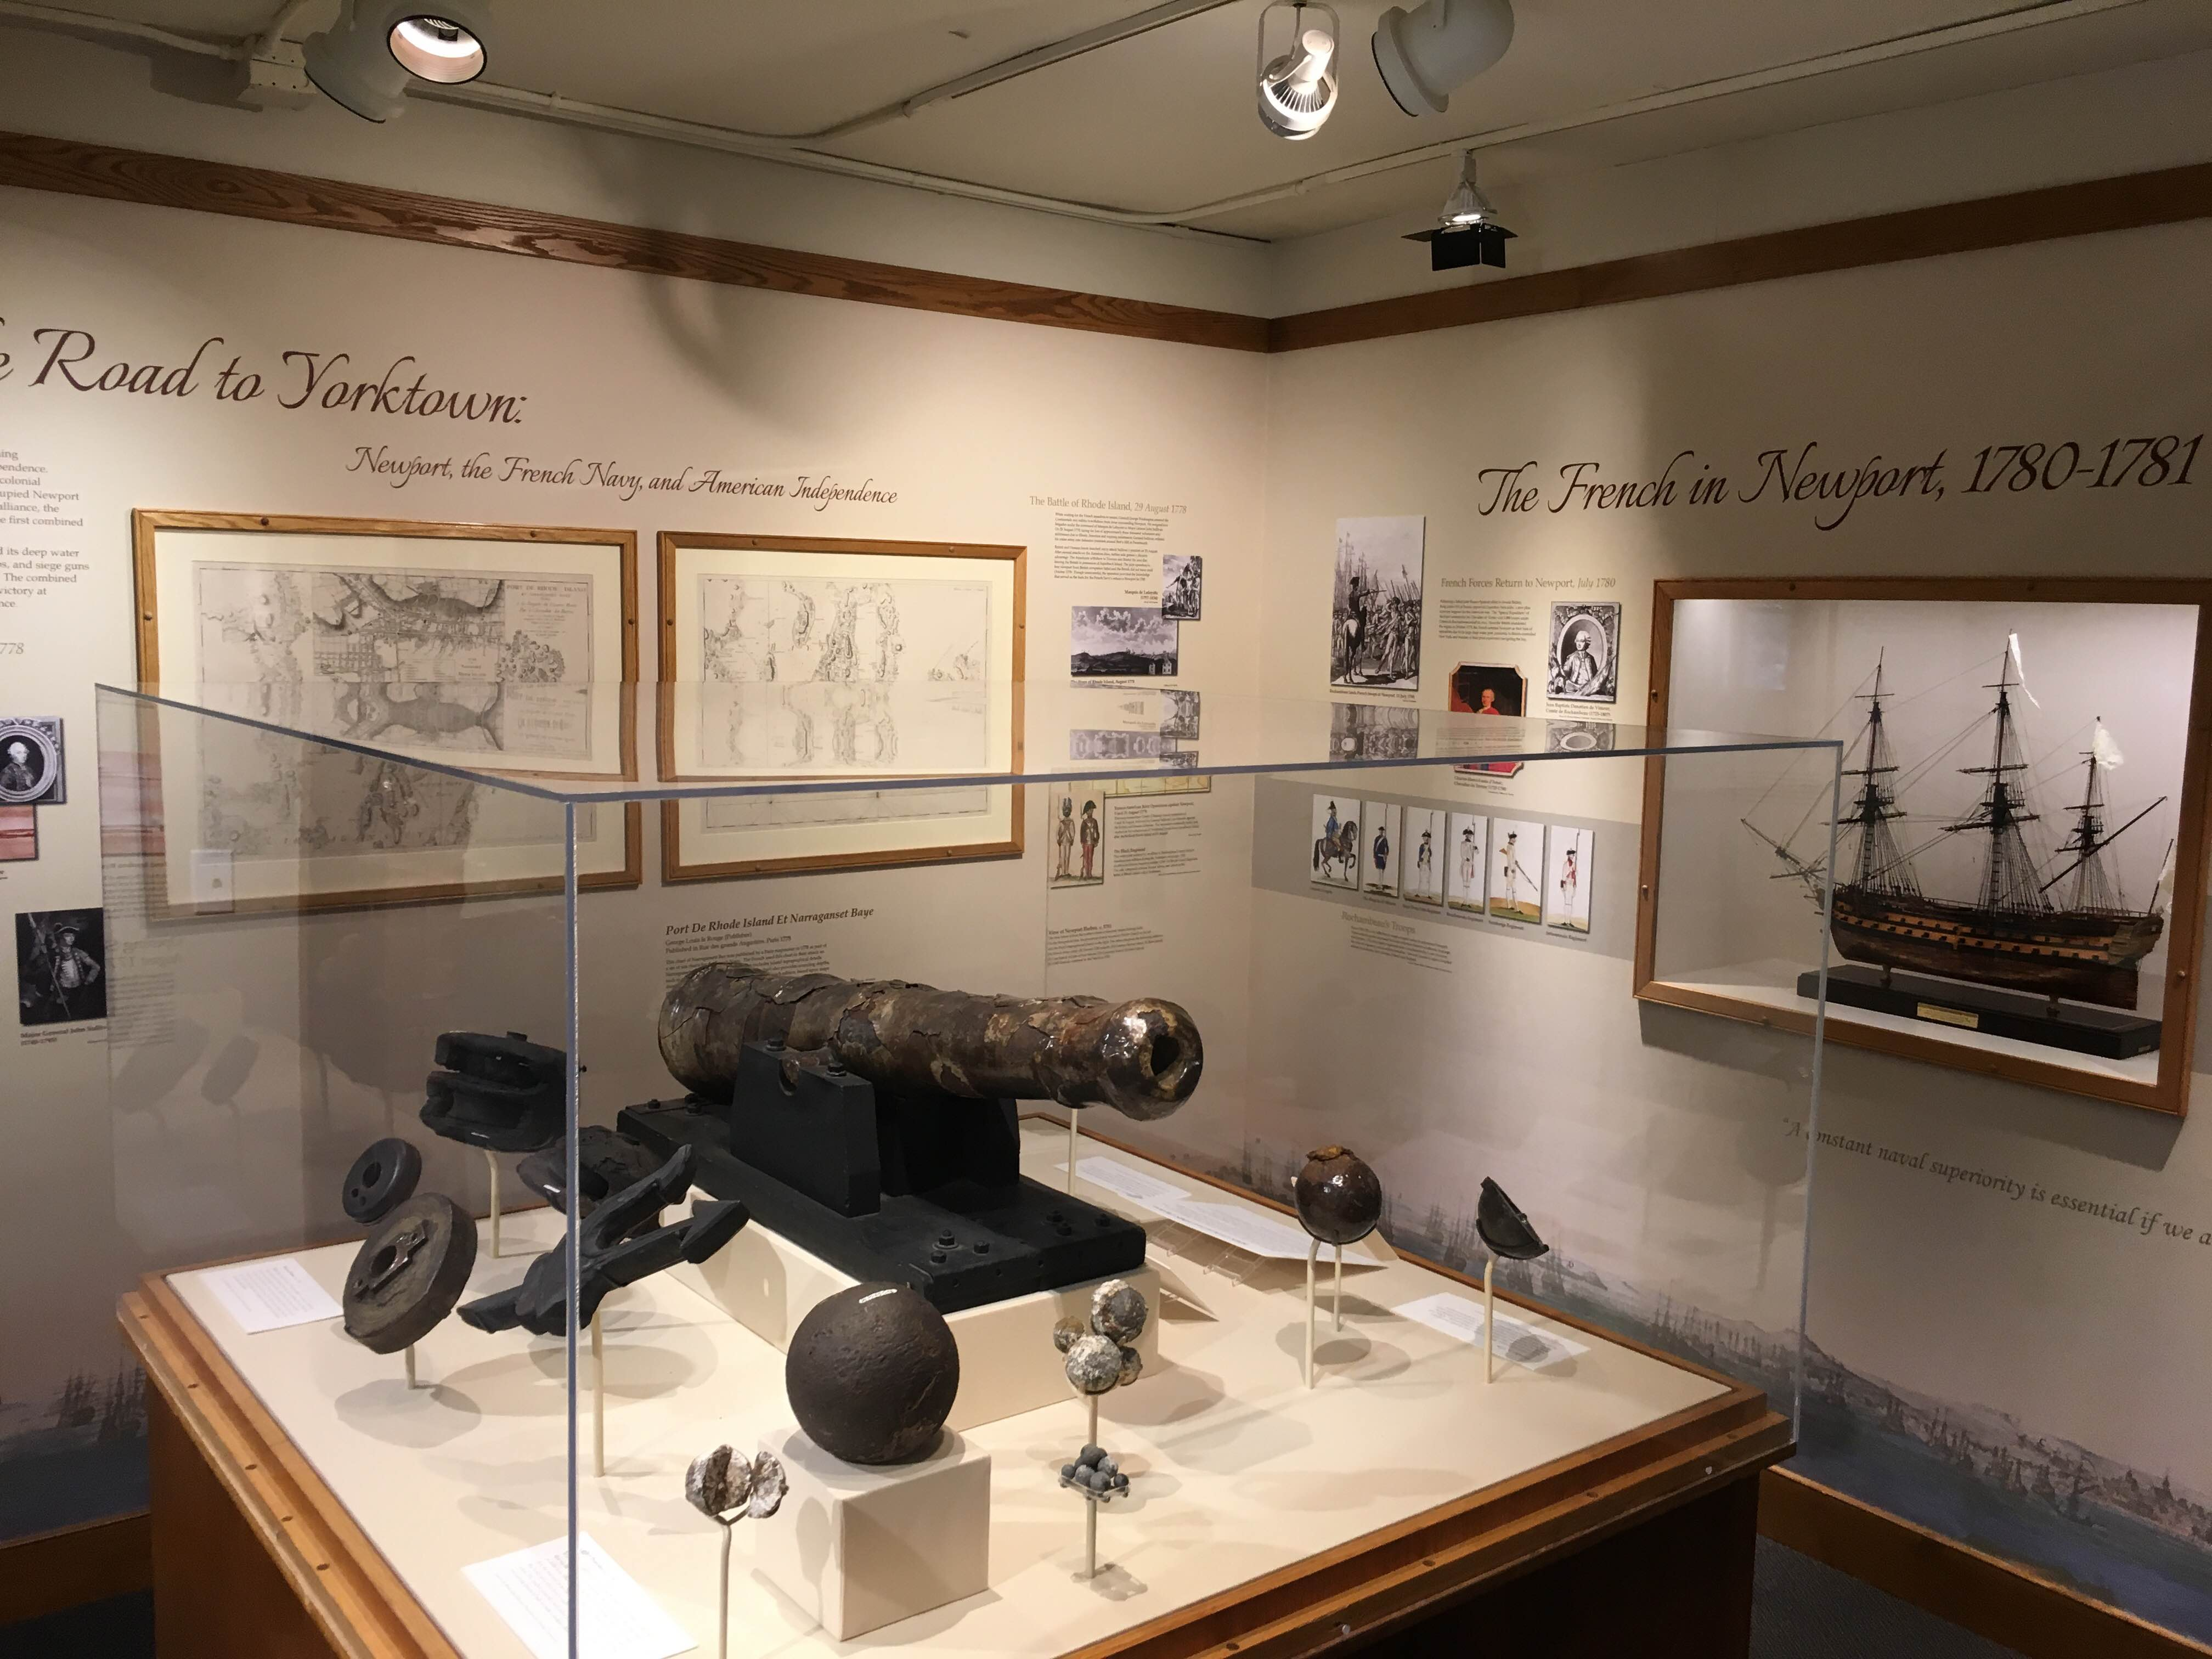 Artifacts recovered from a burned and scuttled British frigate in Narragansett Bay. Items date back to the 1770s and were recovered in the 1970s.